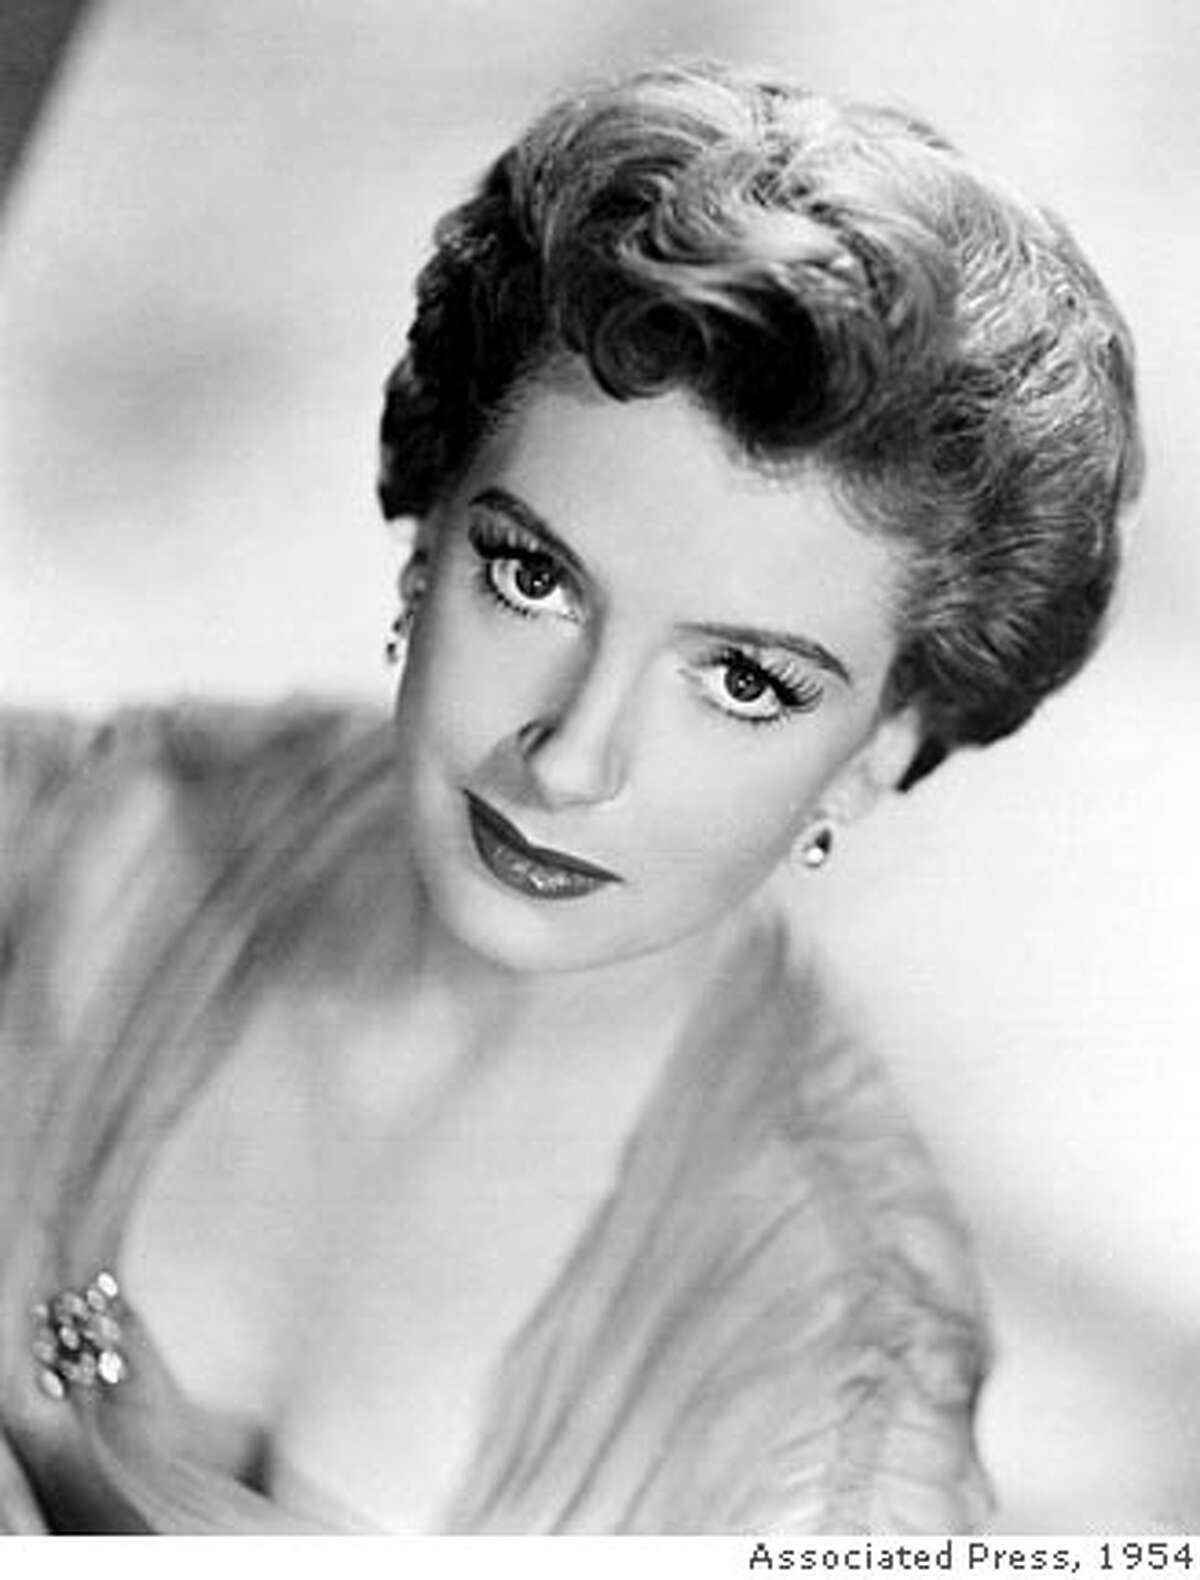 ** FILE ** British actress Deborah Kerr, star of 'From Here To Eternity' and 'The King And I', seen in this 1954 file photo, has died at the age of 86 her agent accounced in London, Thursday Oct. 18 2007. (AP Photo/pa-file) ** UNITED KINGDOM OUT: NO SALES: NO ARCHIVE: **